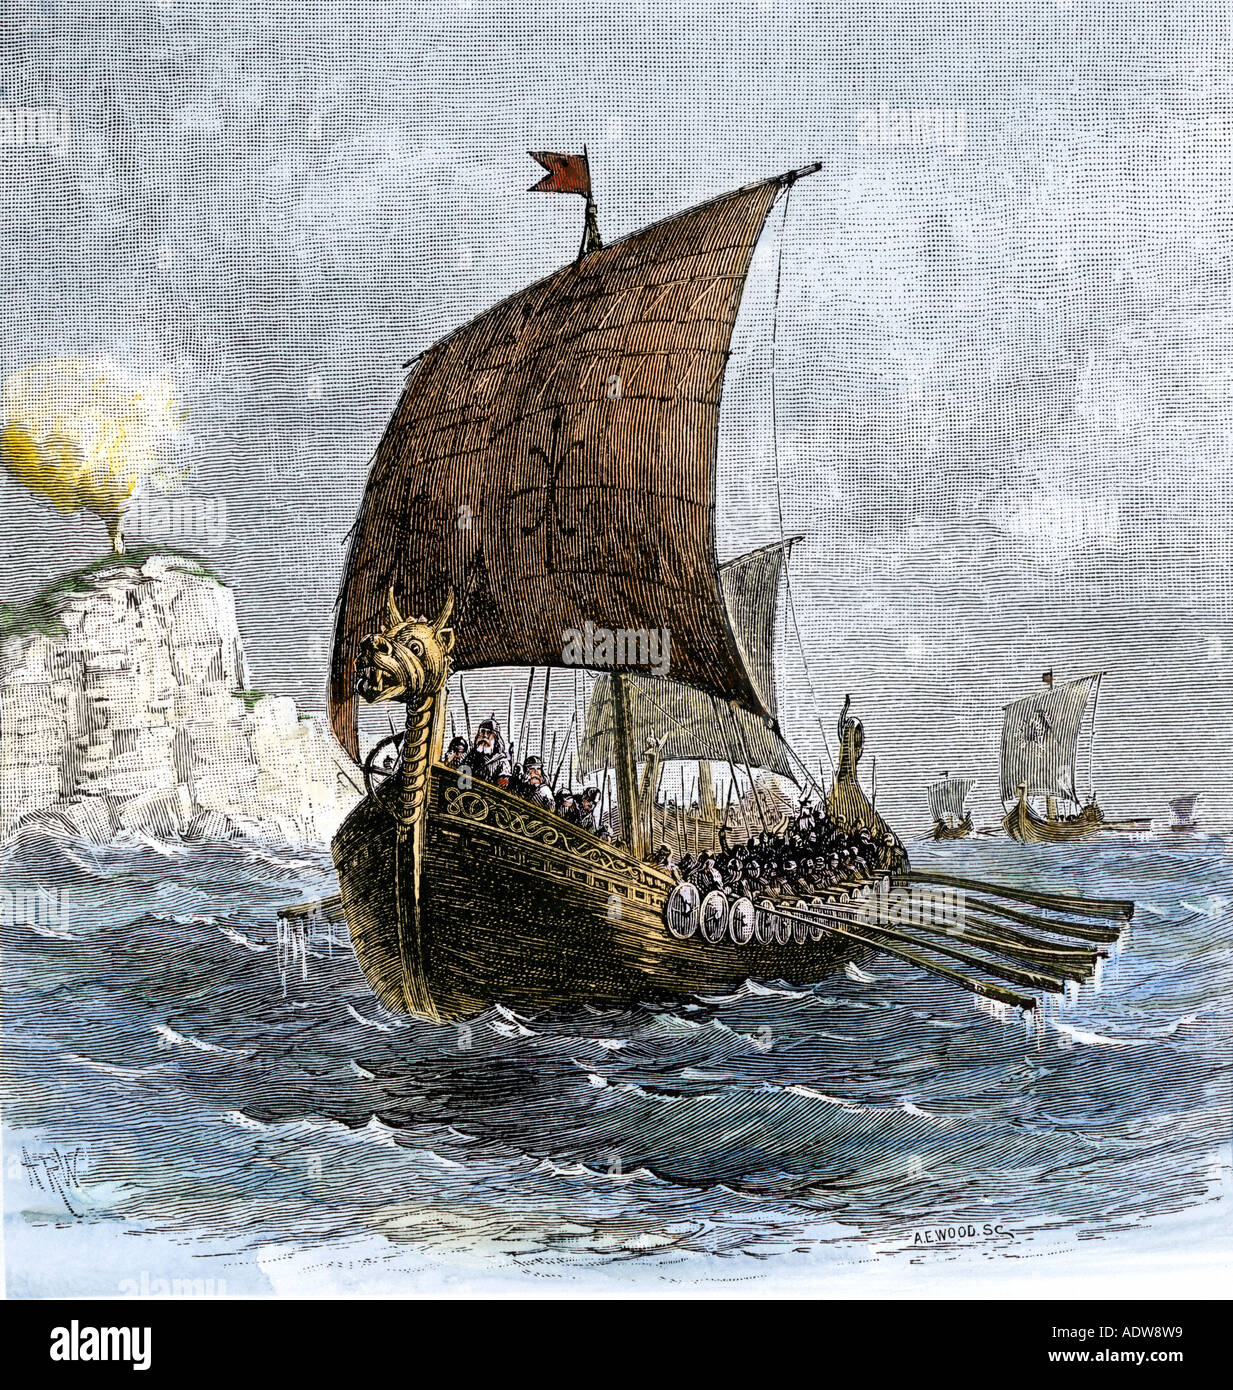 Danish Viking ship Raven at sea showing oars and sails. Hand-colored woodcut - Stock Image